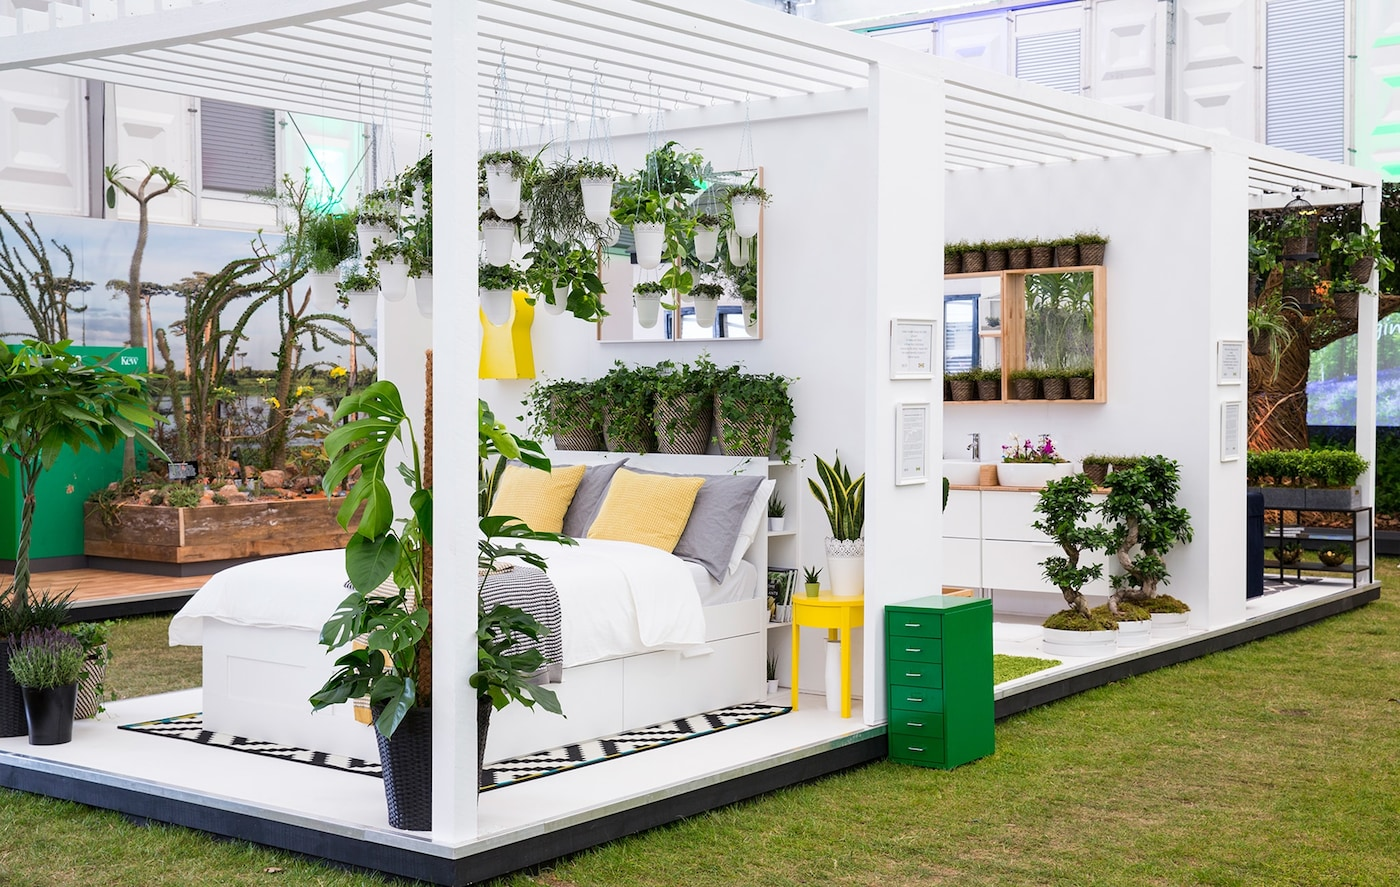 'At Home with Plants' co-created with IKEA and Indoor Garden Design at the RHS Chelsea Flower Show